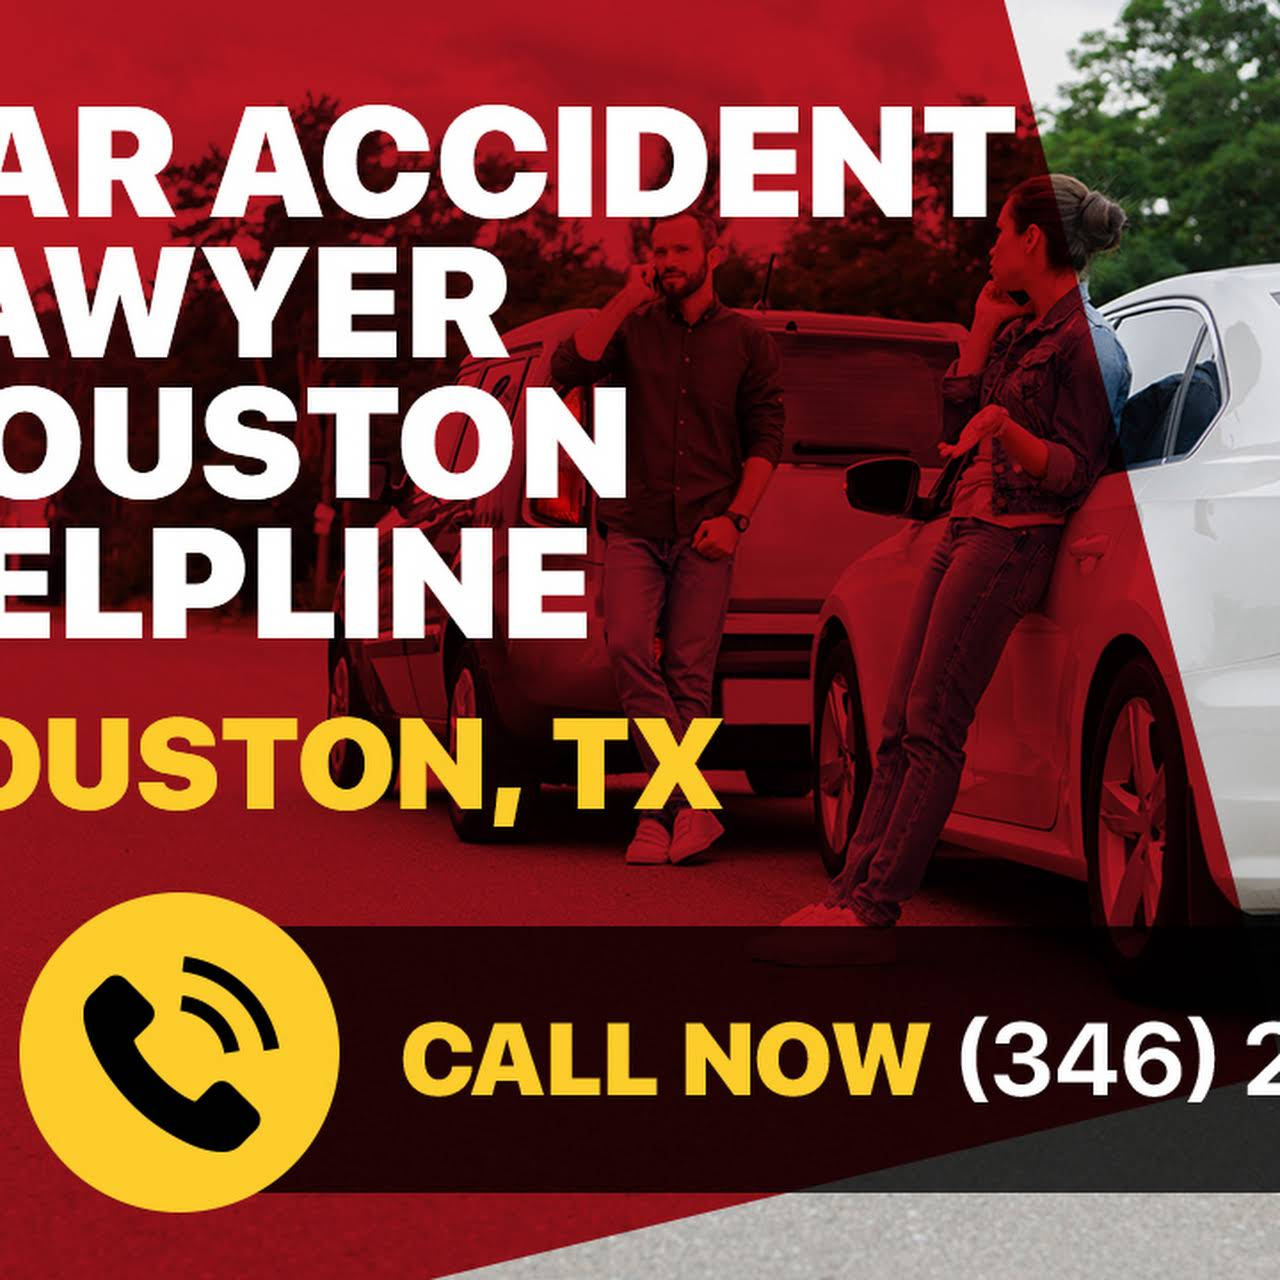 Houston TX Lawyers- Personal Injury, Car Accident, Work Comp